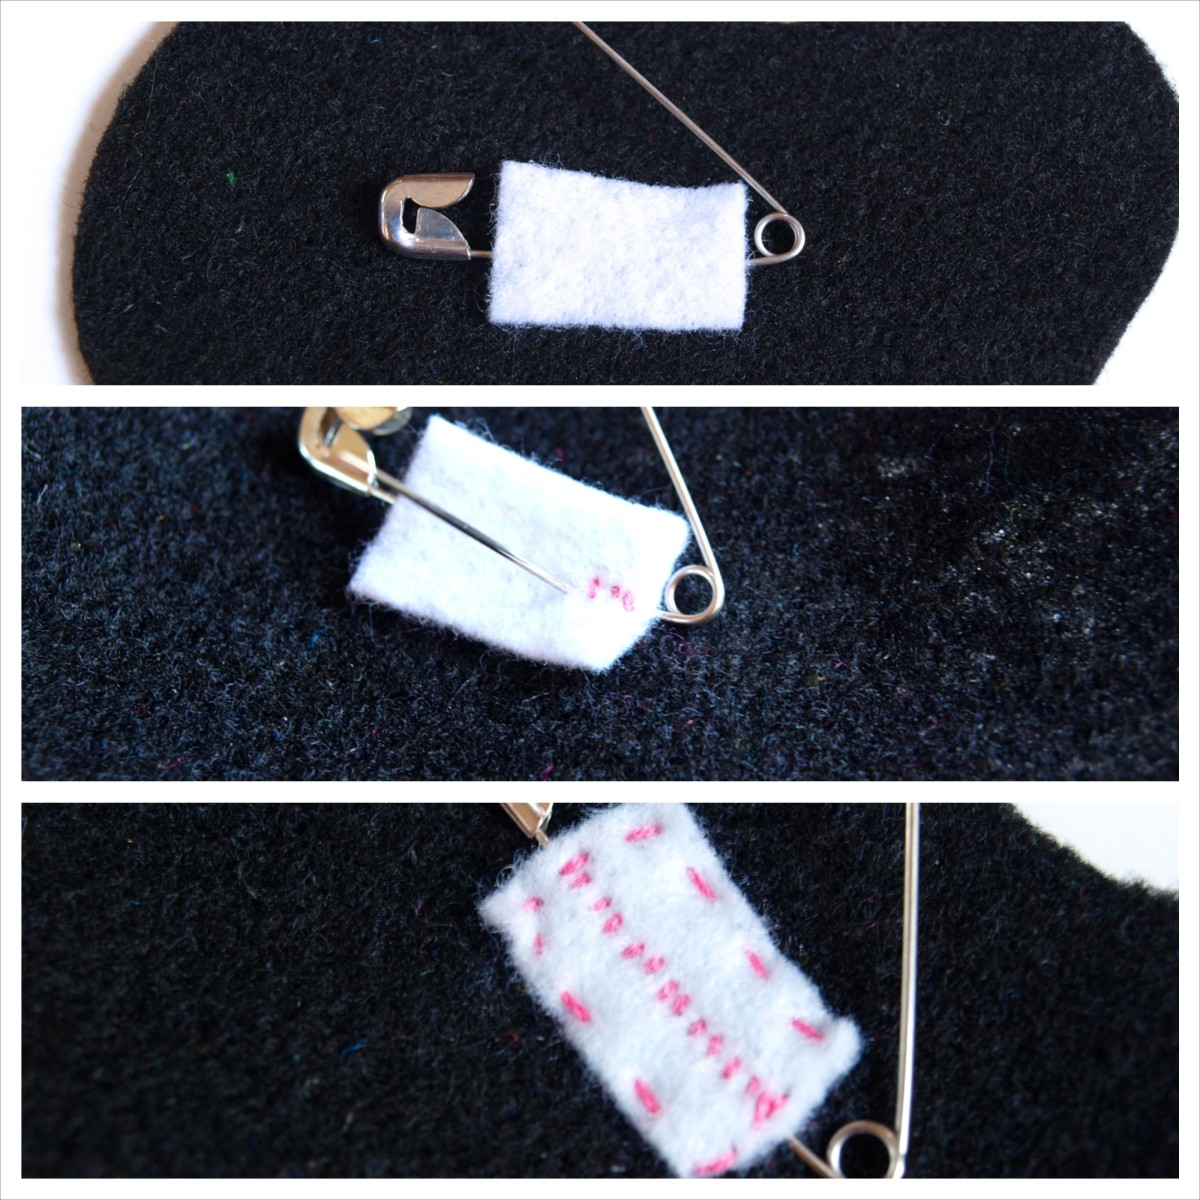 Secure the safety pin to the back of the brooch.